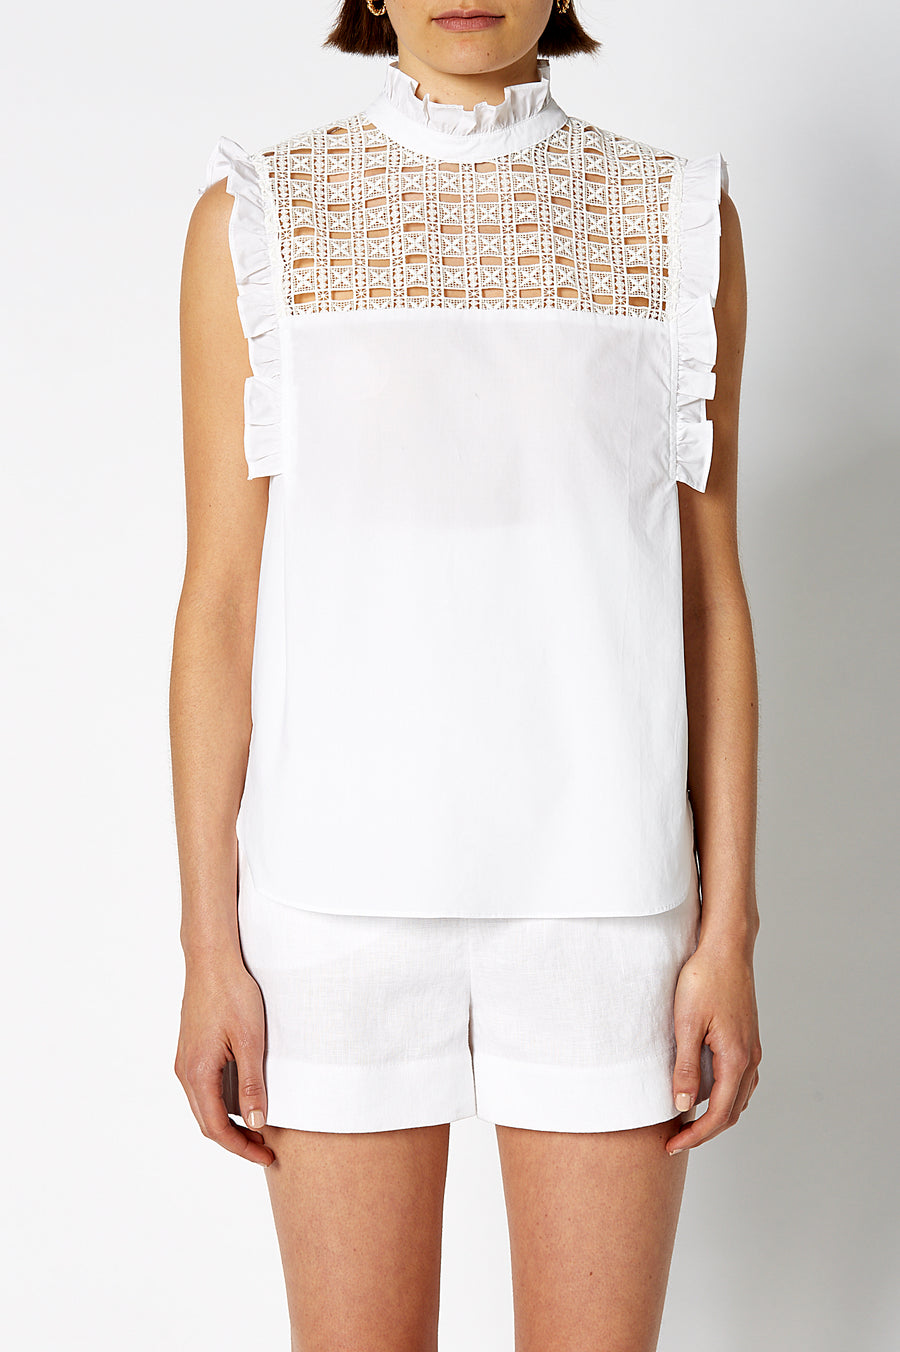 Lace Trim Sleeveless Shirt White, high neckline, neck and shoulder ruffle detail, embroidered panel